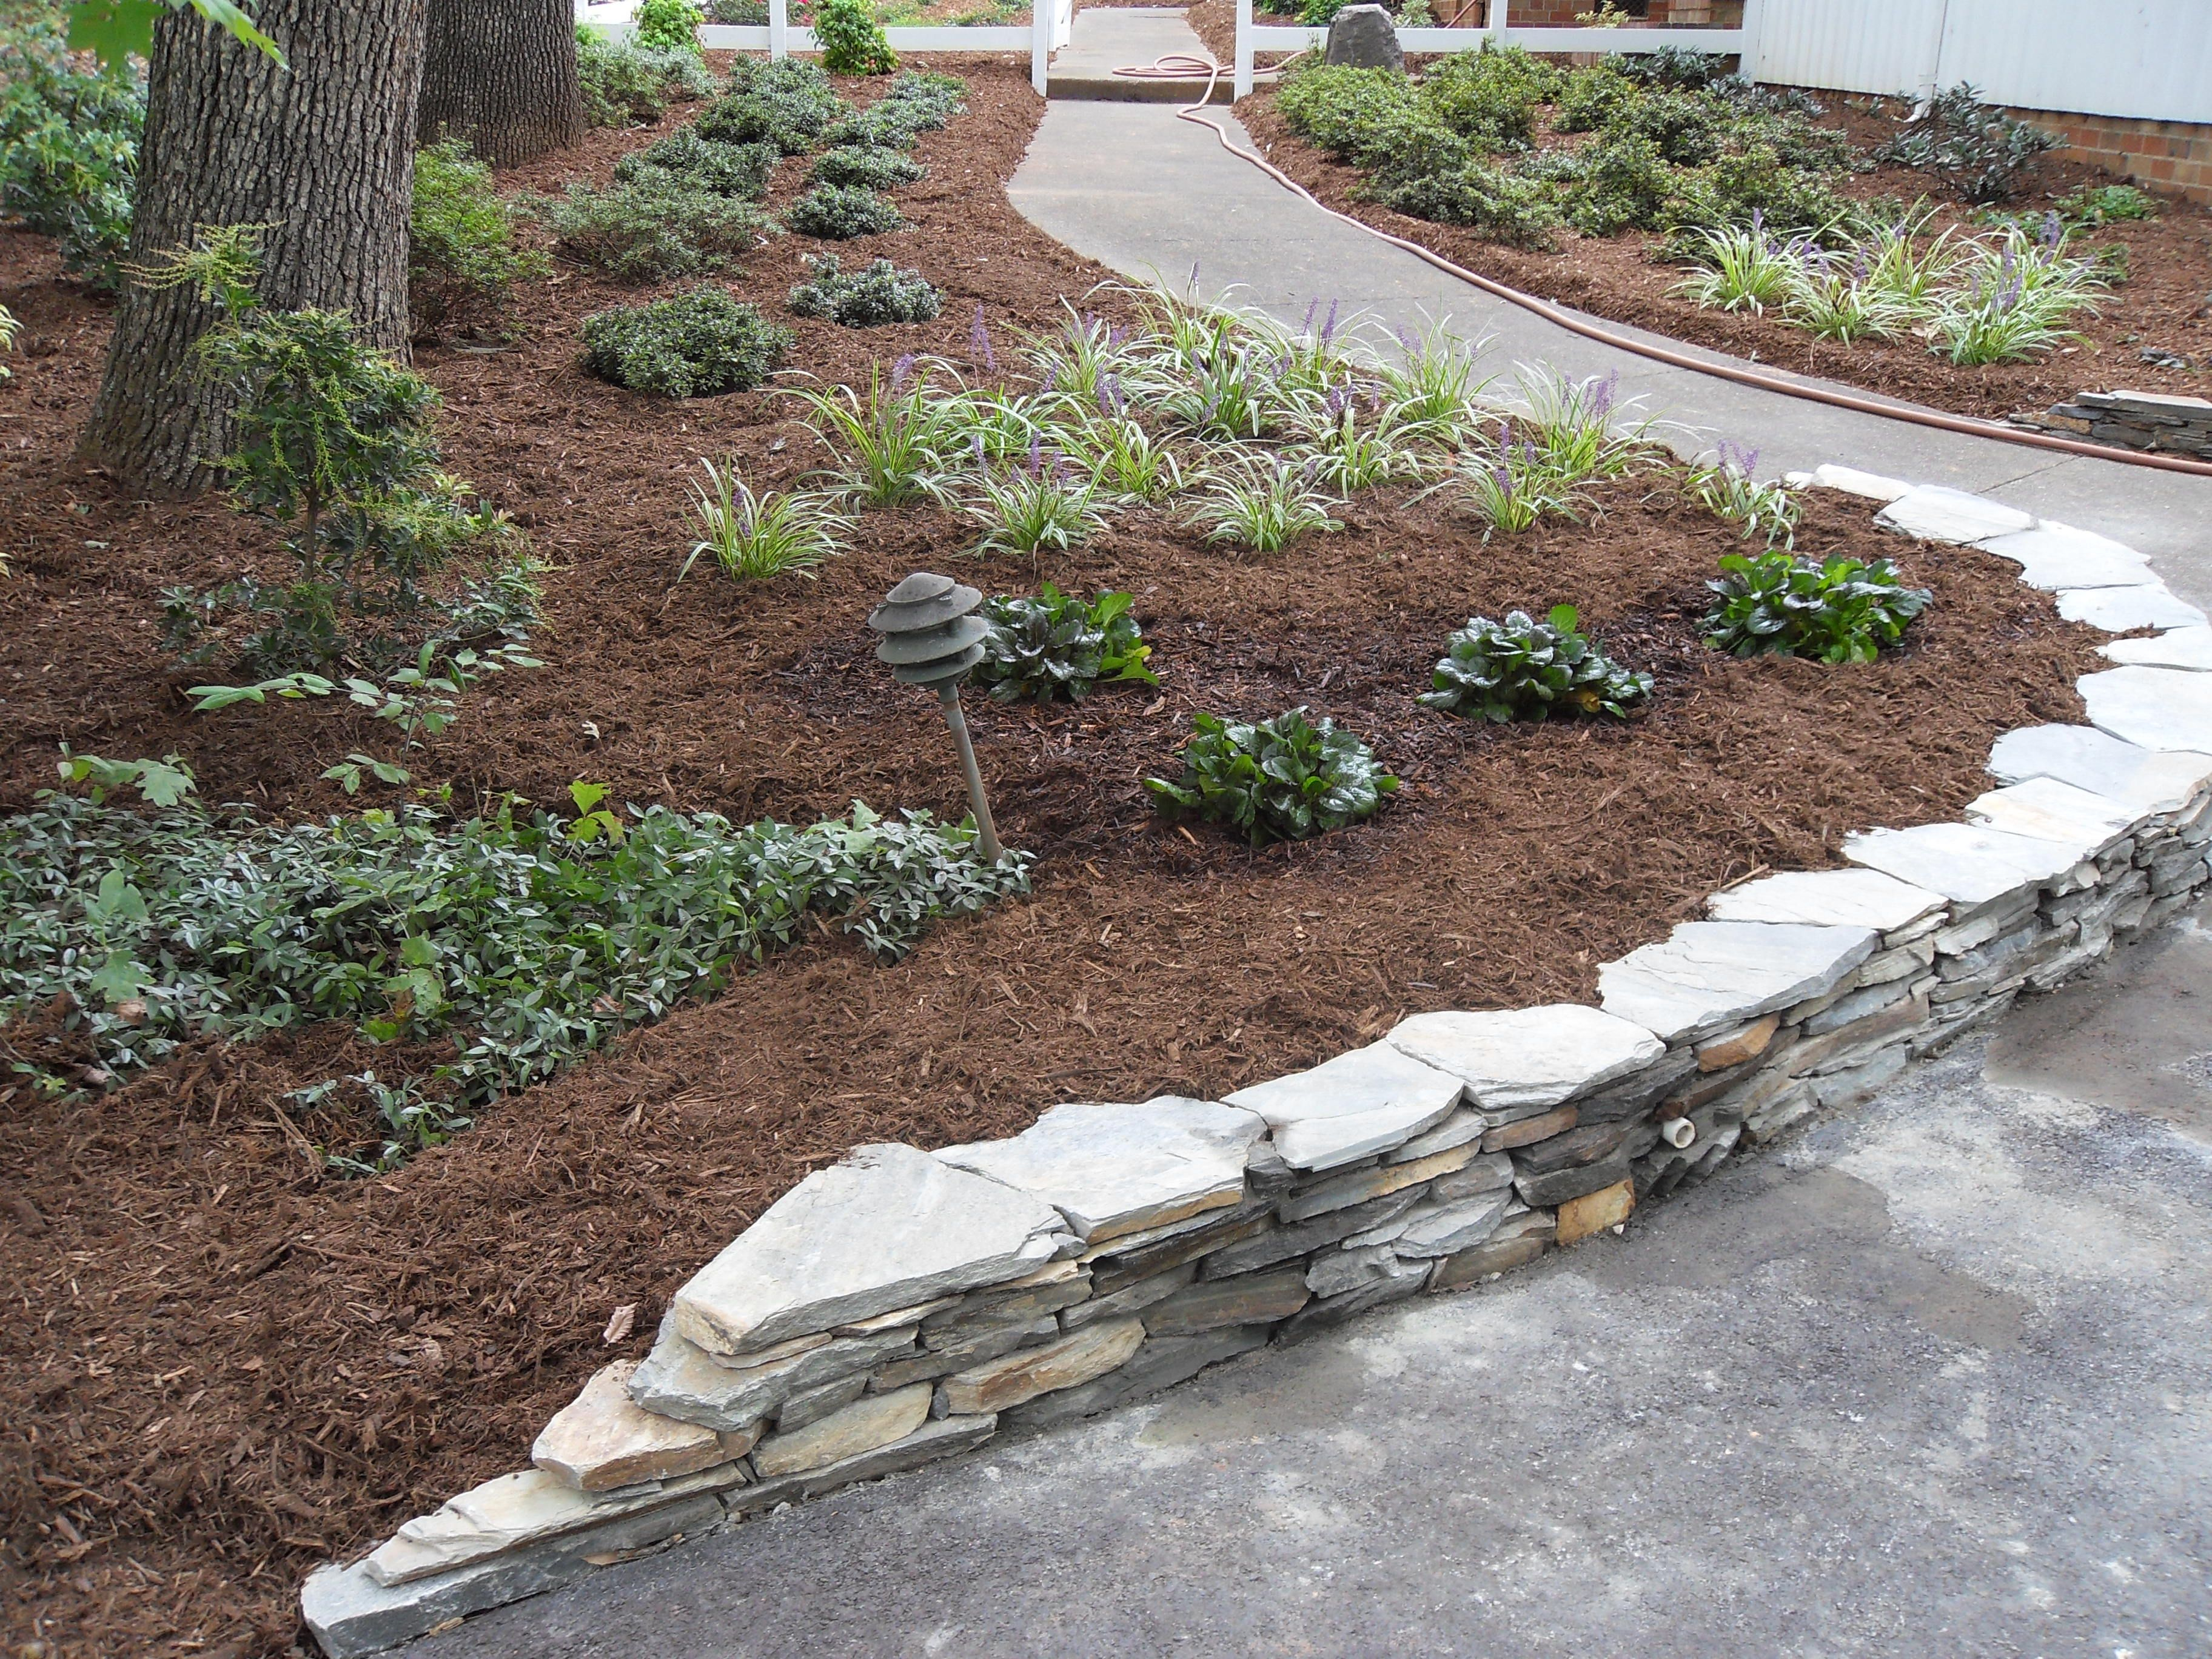 Landscape Design Retaining Wall Ideas garden walls materials stone stucco retaining and landscape wall huettl landscape architecture walnut Flagstone Retaining Wall Ideas Custom Stonework Amp Landscape Design Retaining Walls In